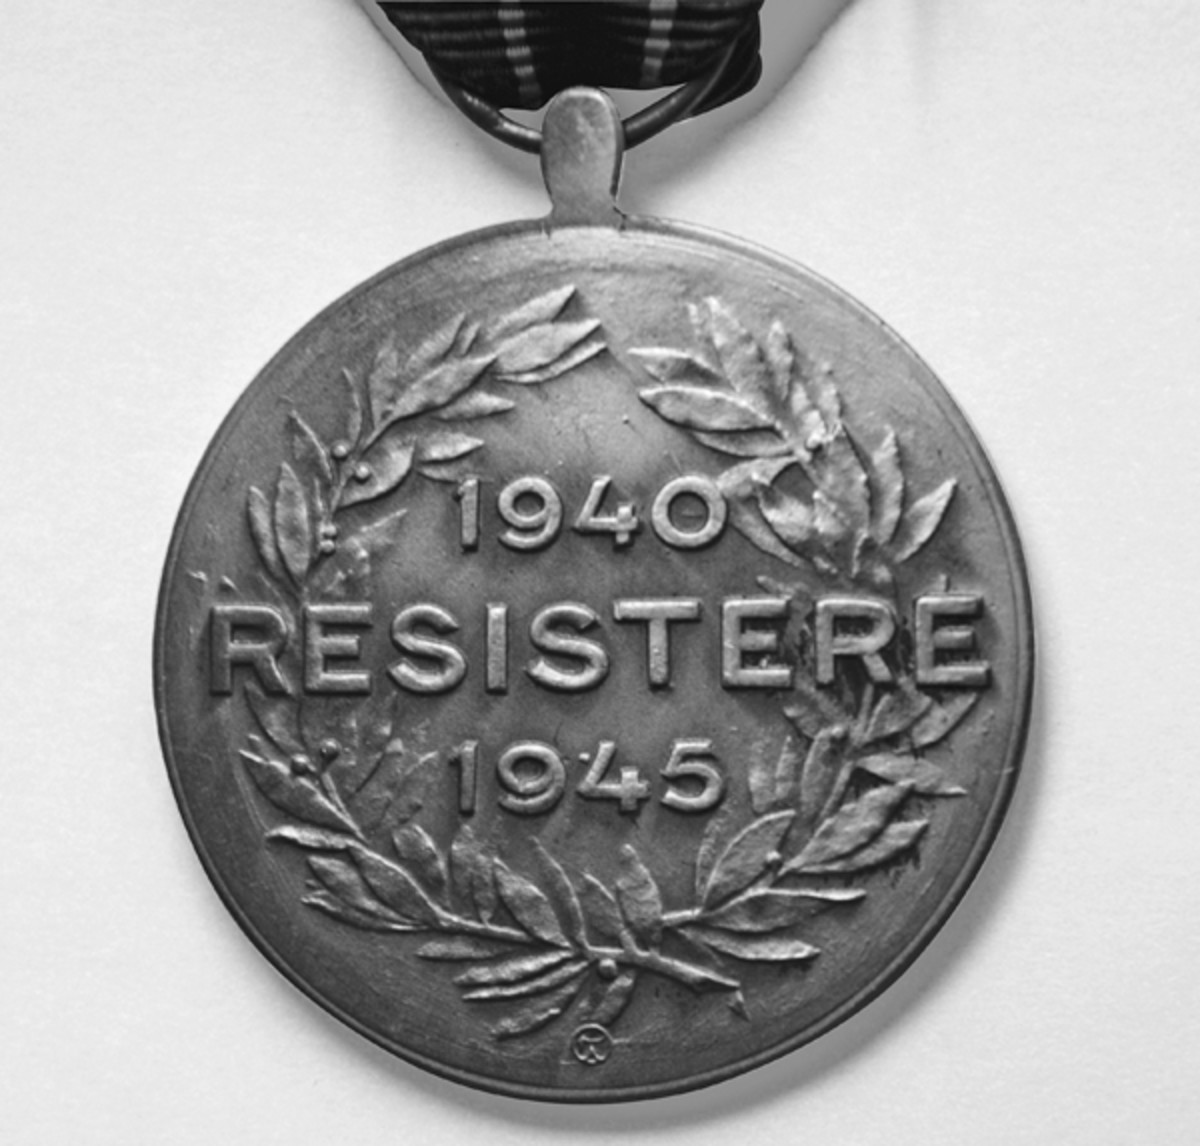 Reverse of the Resistance Medal with its symbolic victor's garland of laurels.